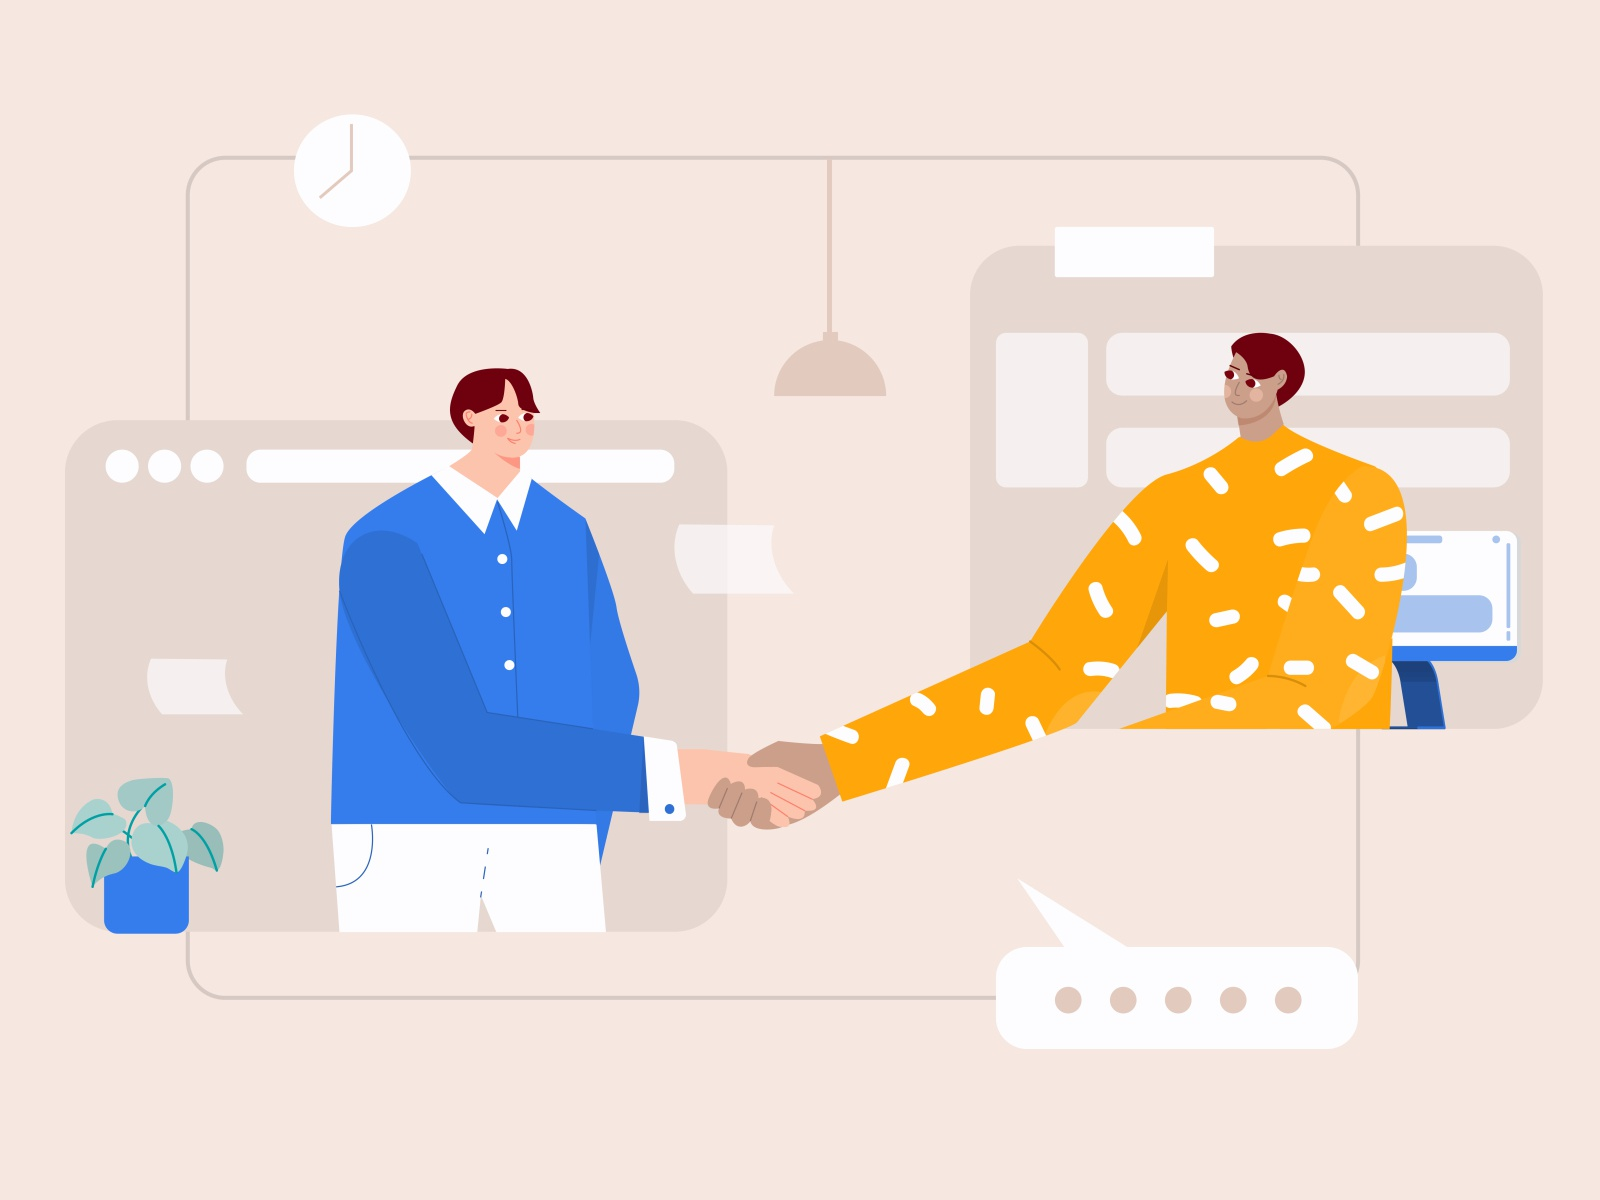 Dealing project with virtual handshake illustration by uigo